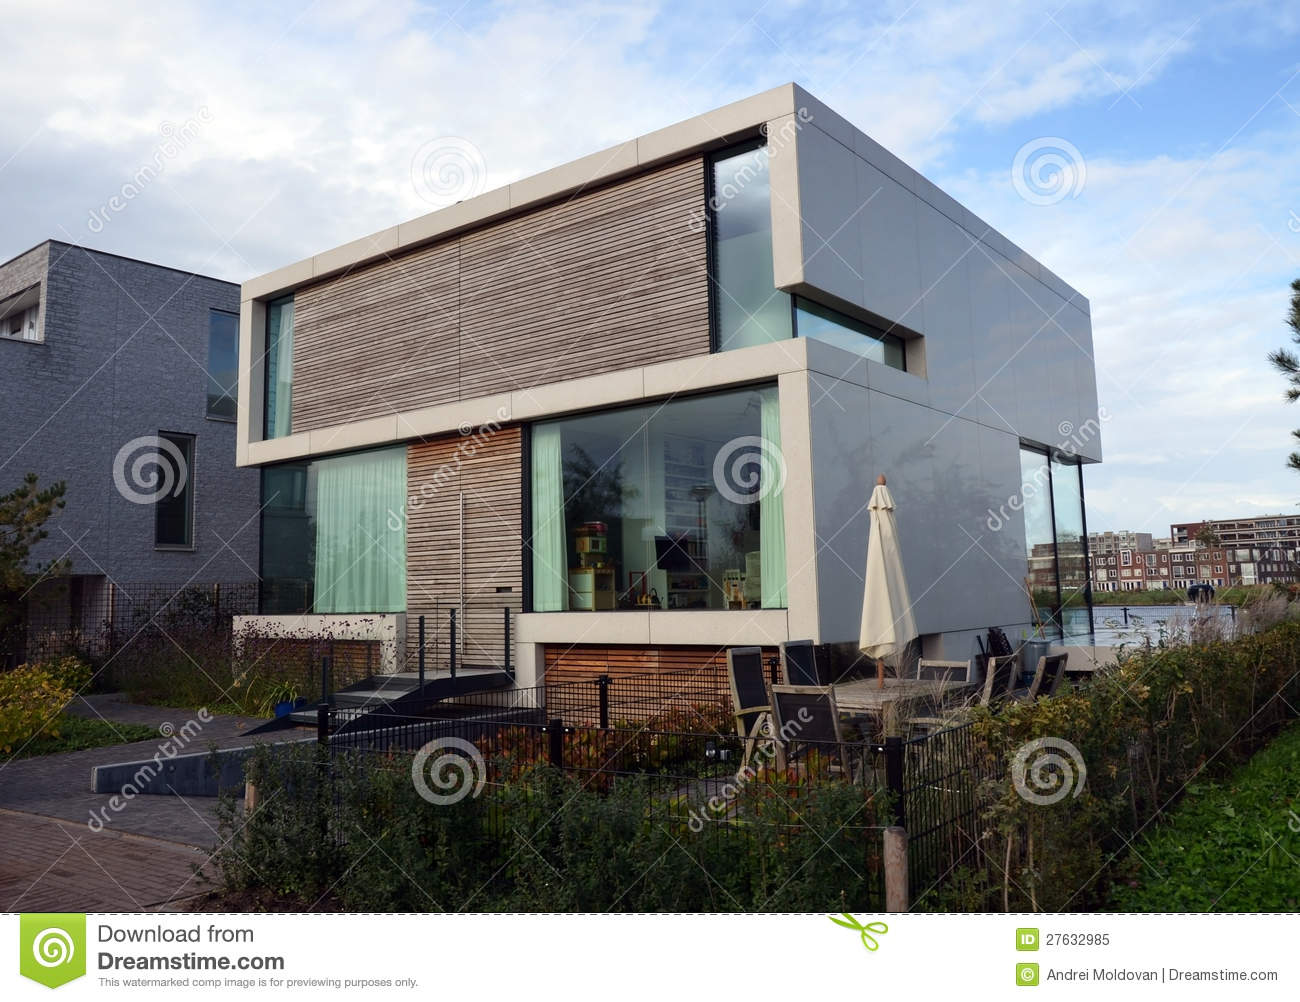 Modern House With Garden In msterdam oyalty Free Stock Photo ... - ^